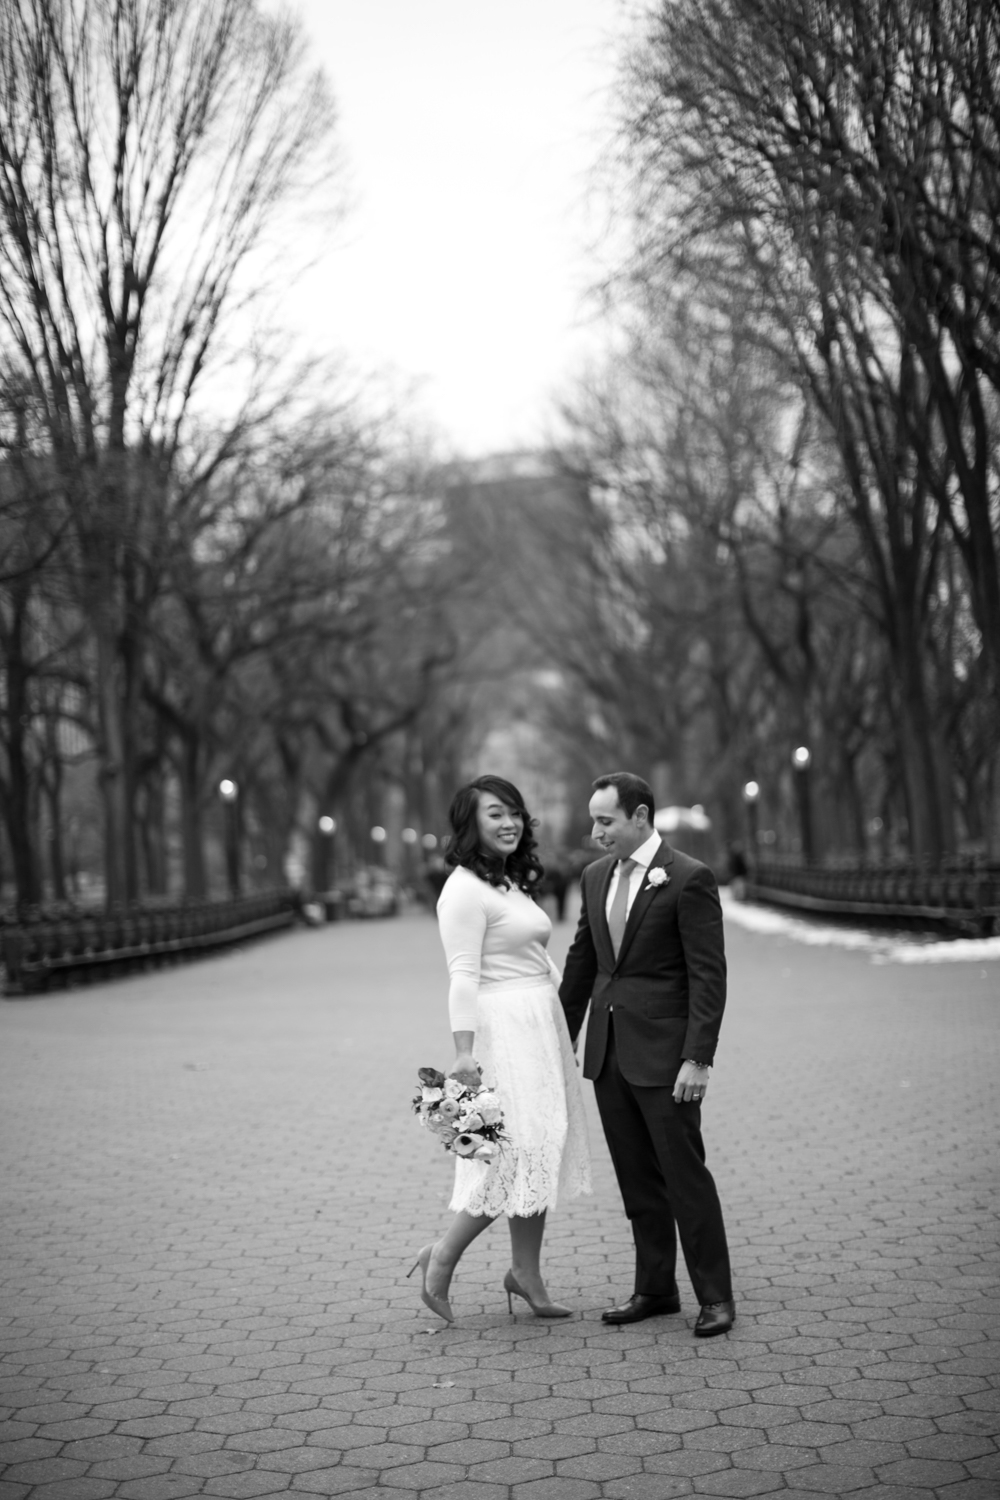 NYC newlyweds portrait in black and white